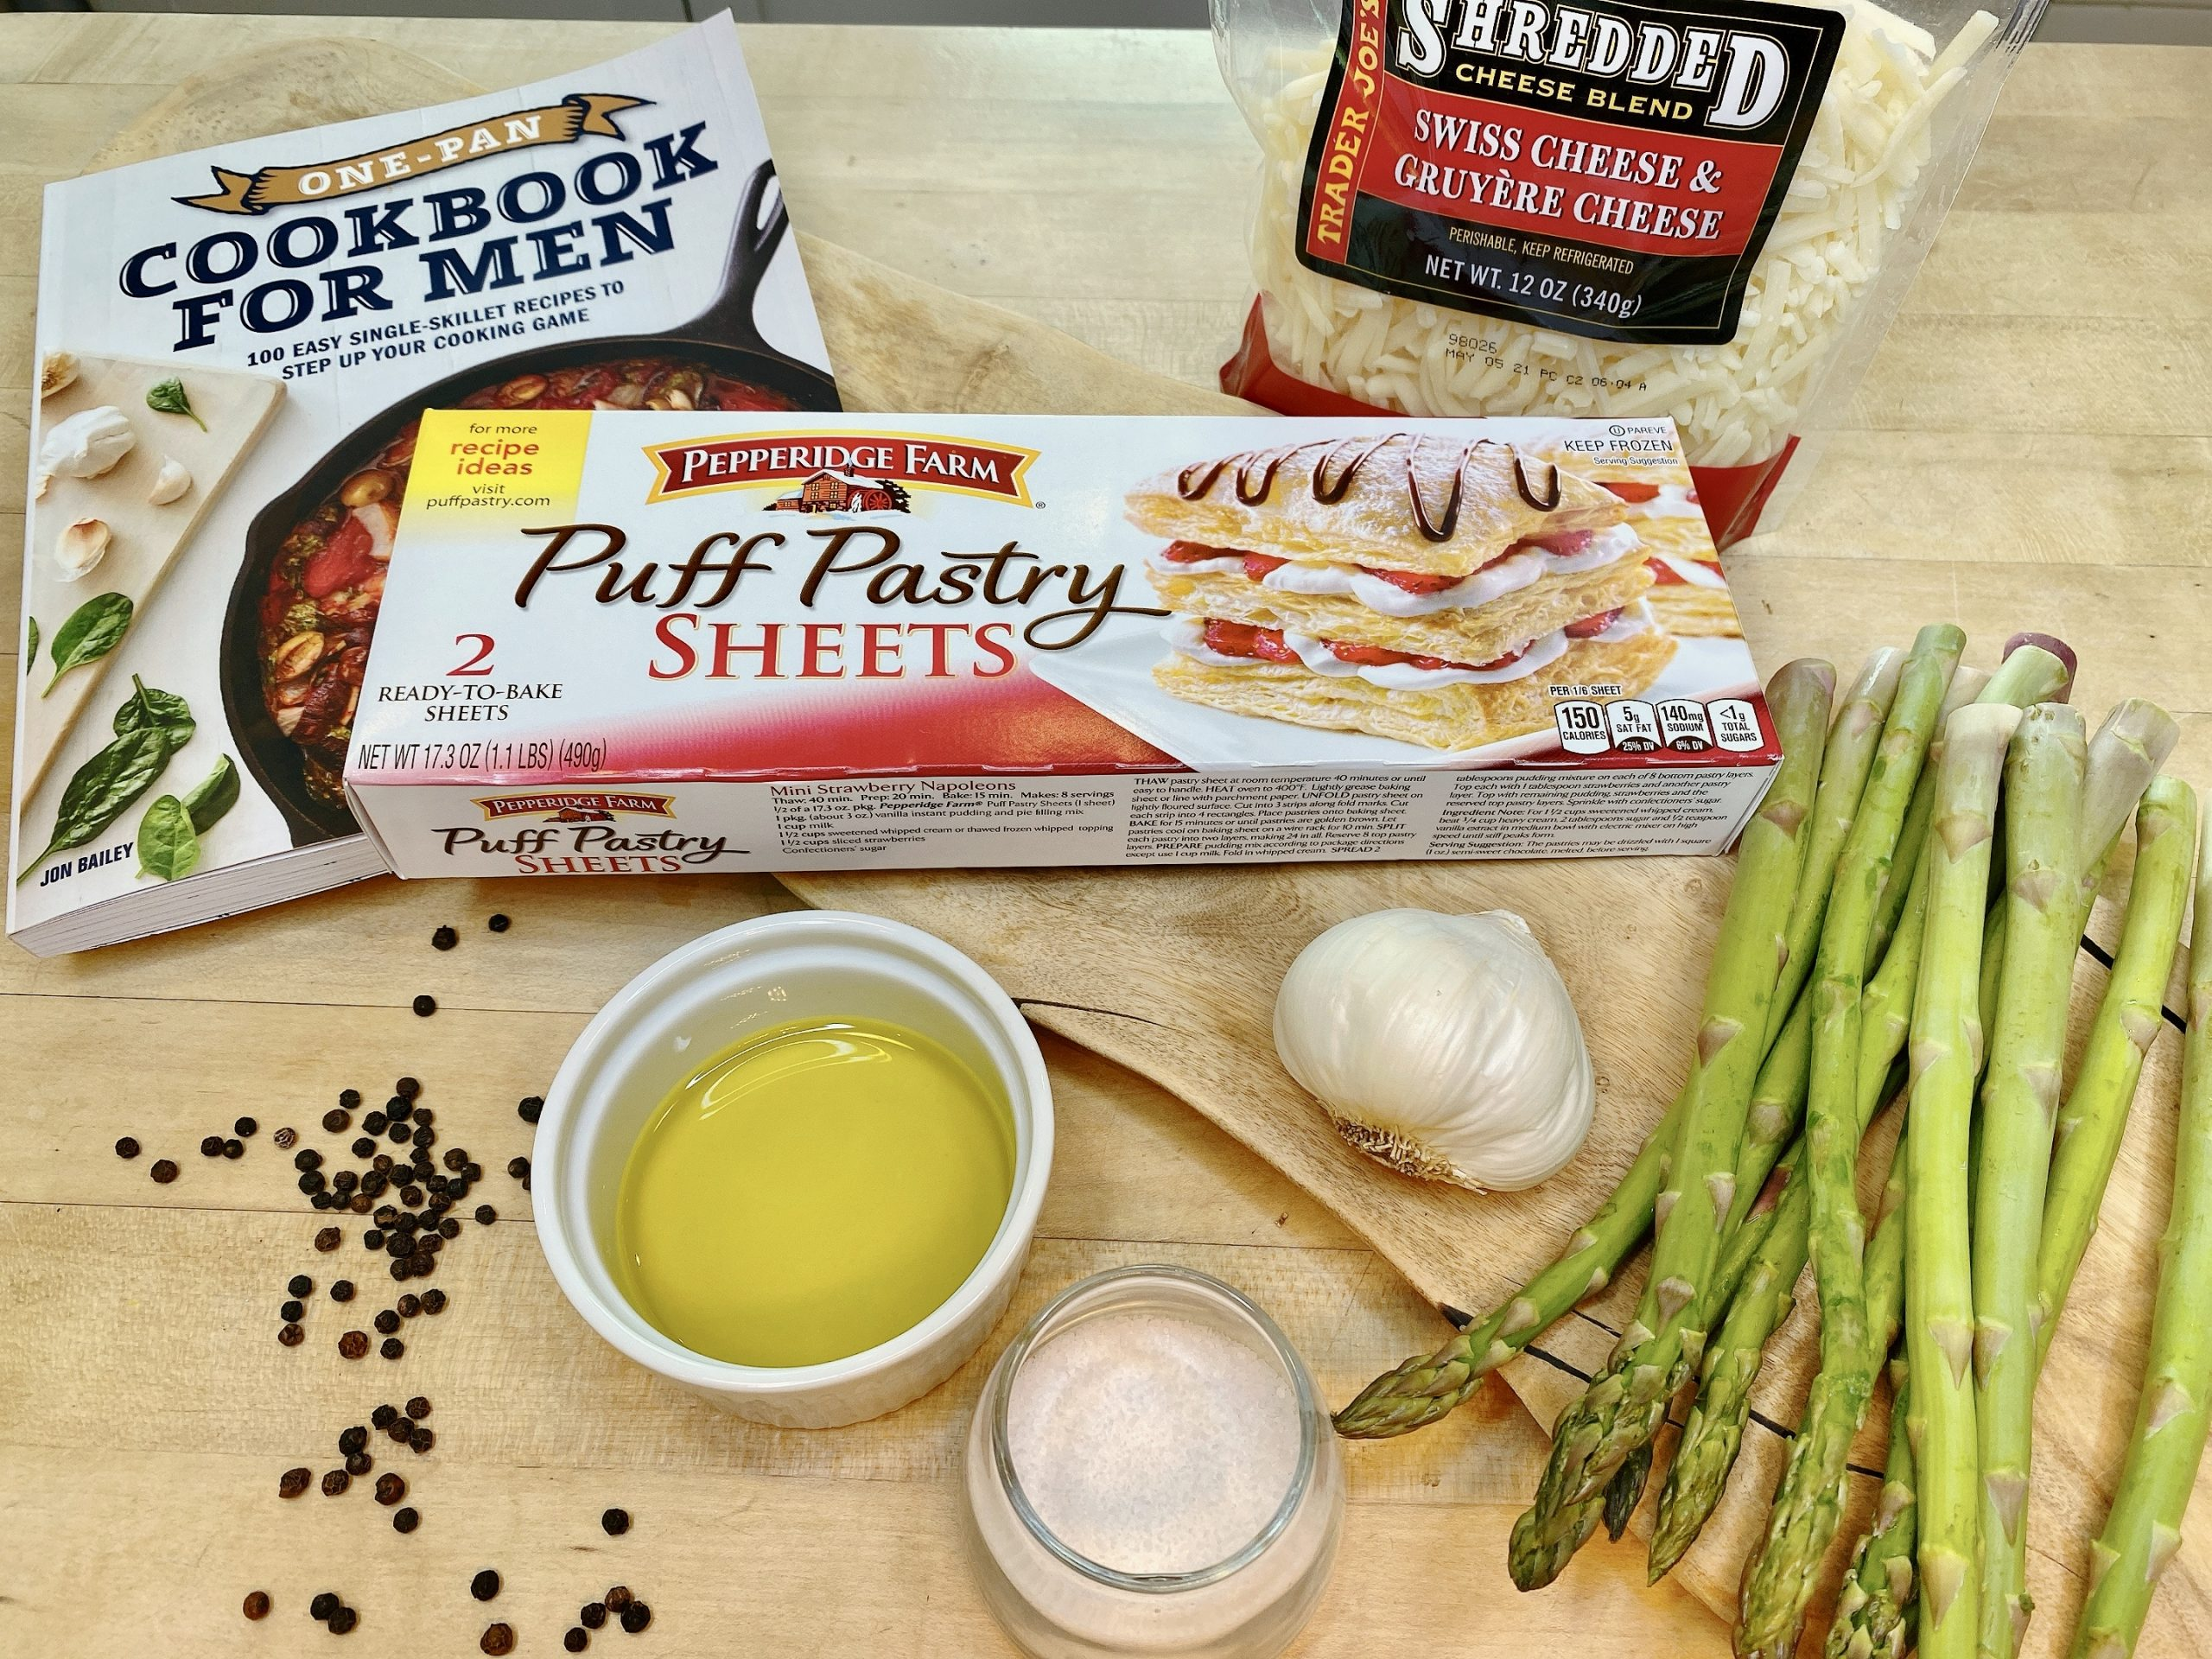 ingredients to make asparagus tart including puff pastry dough, shredded cheese, olive oil, garlic and asparagus